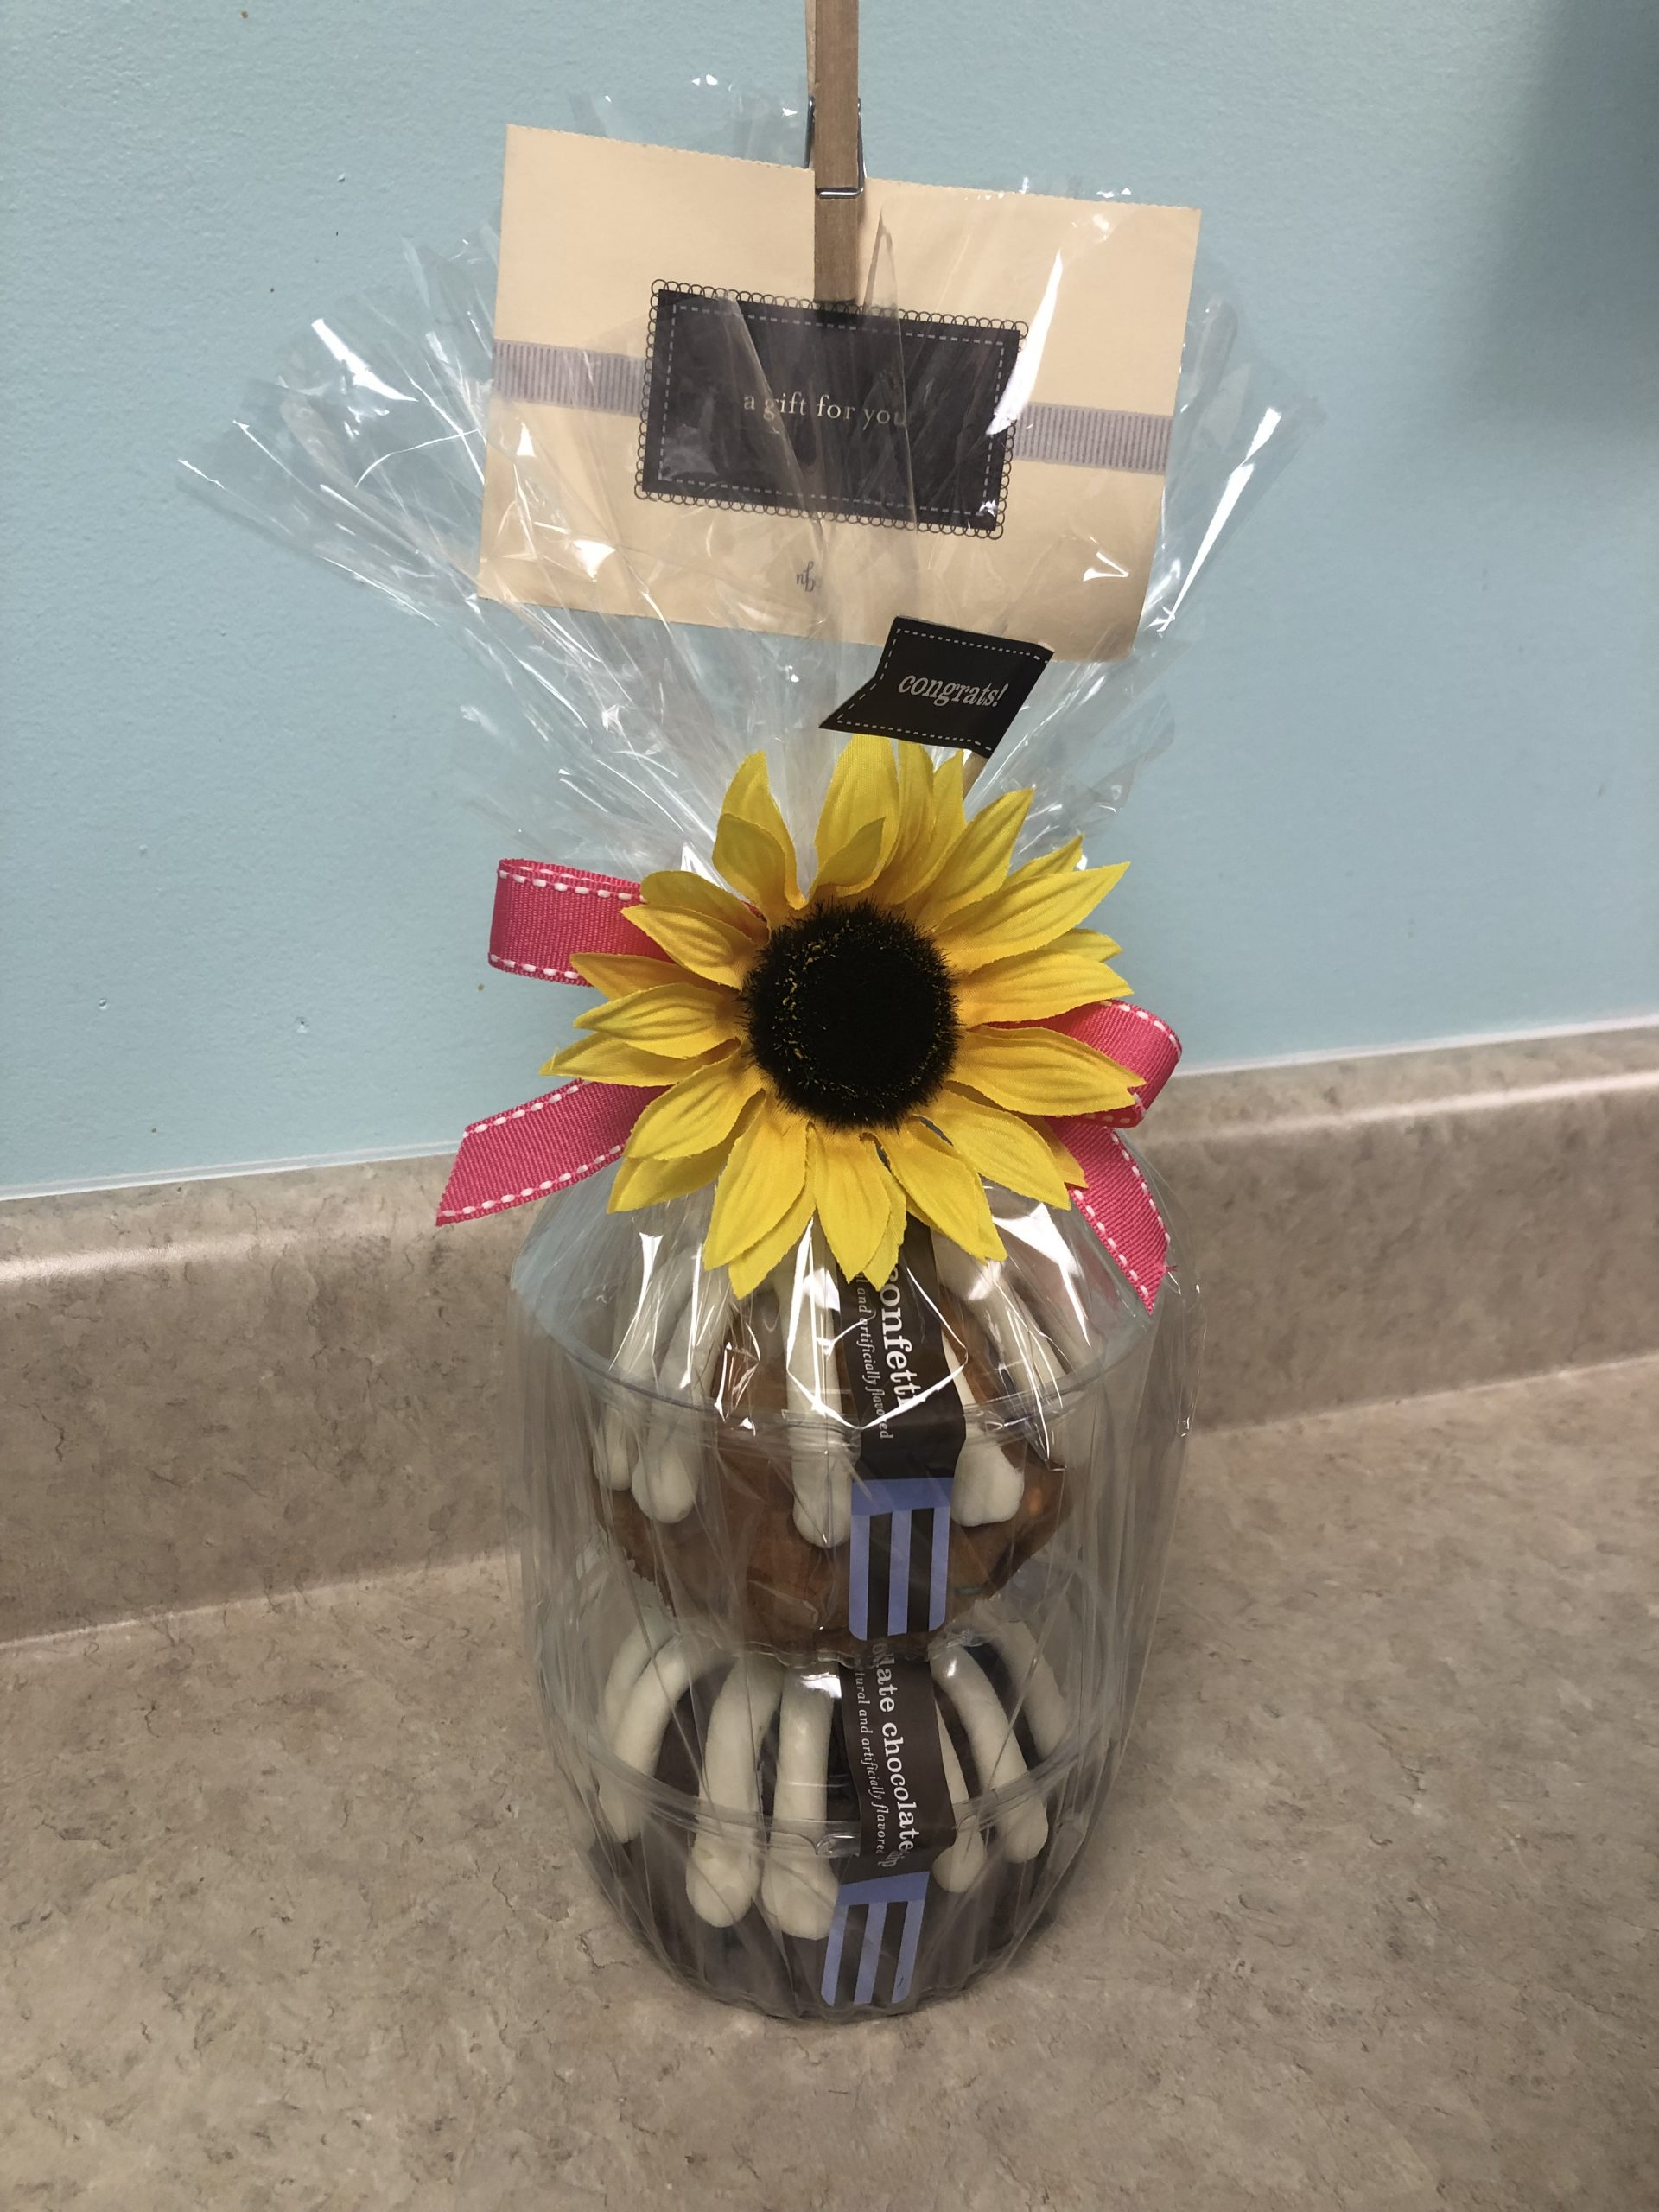 Nothing Bundt Cake donates for Child's Graduation from Trauma Therapy